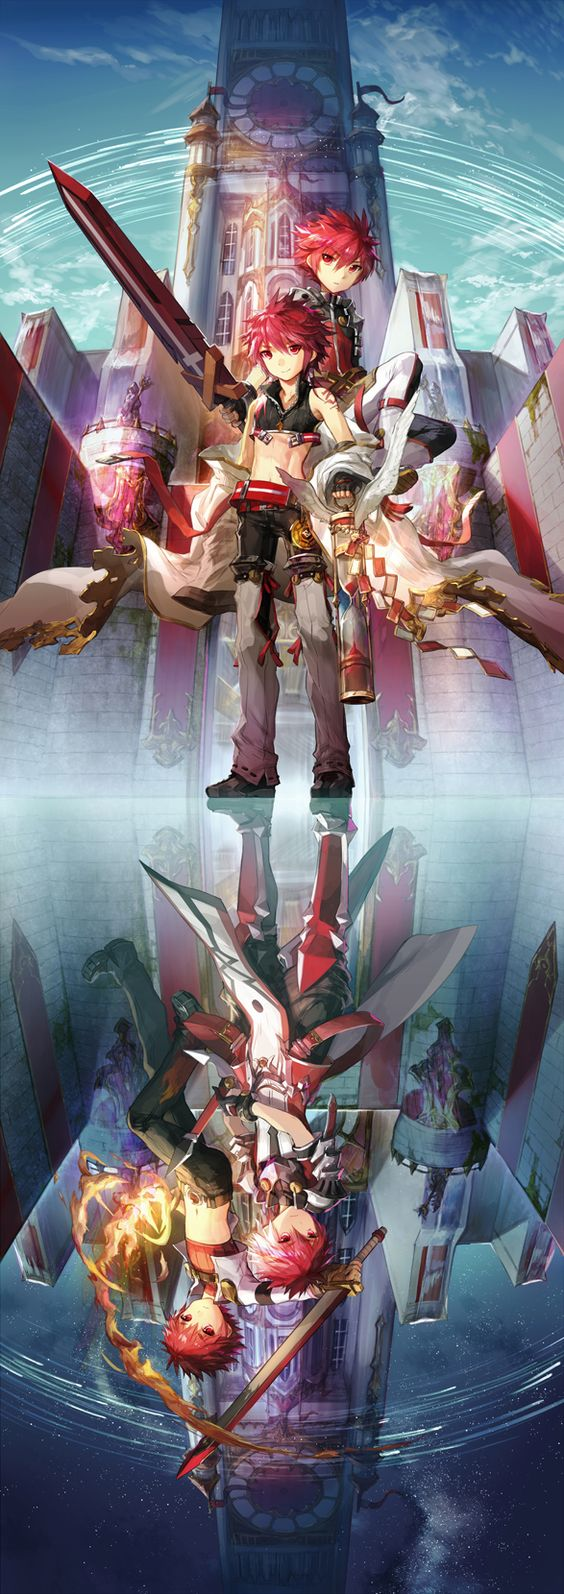 Elsword-Sword knight and Rune Slayer, Magic knight and Lord knight